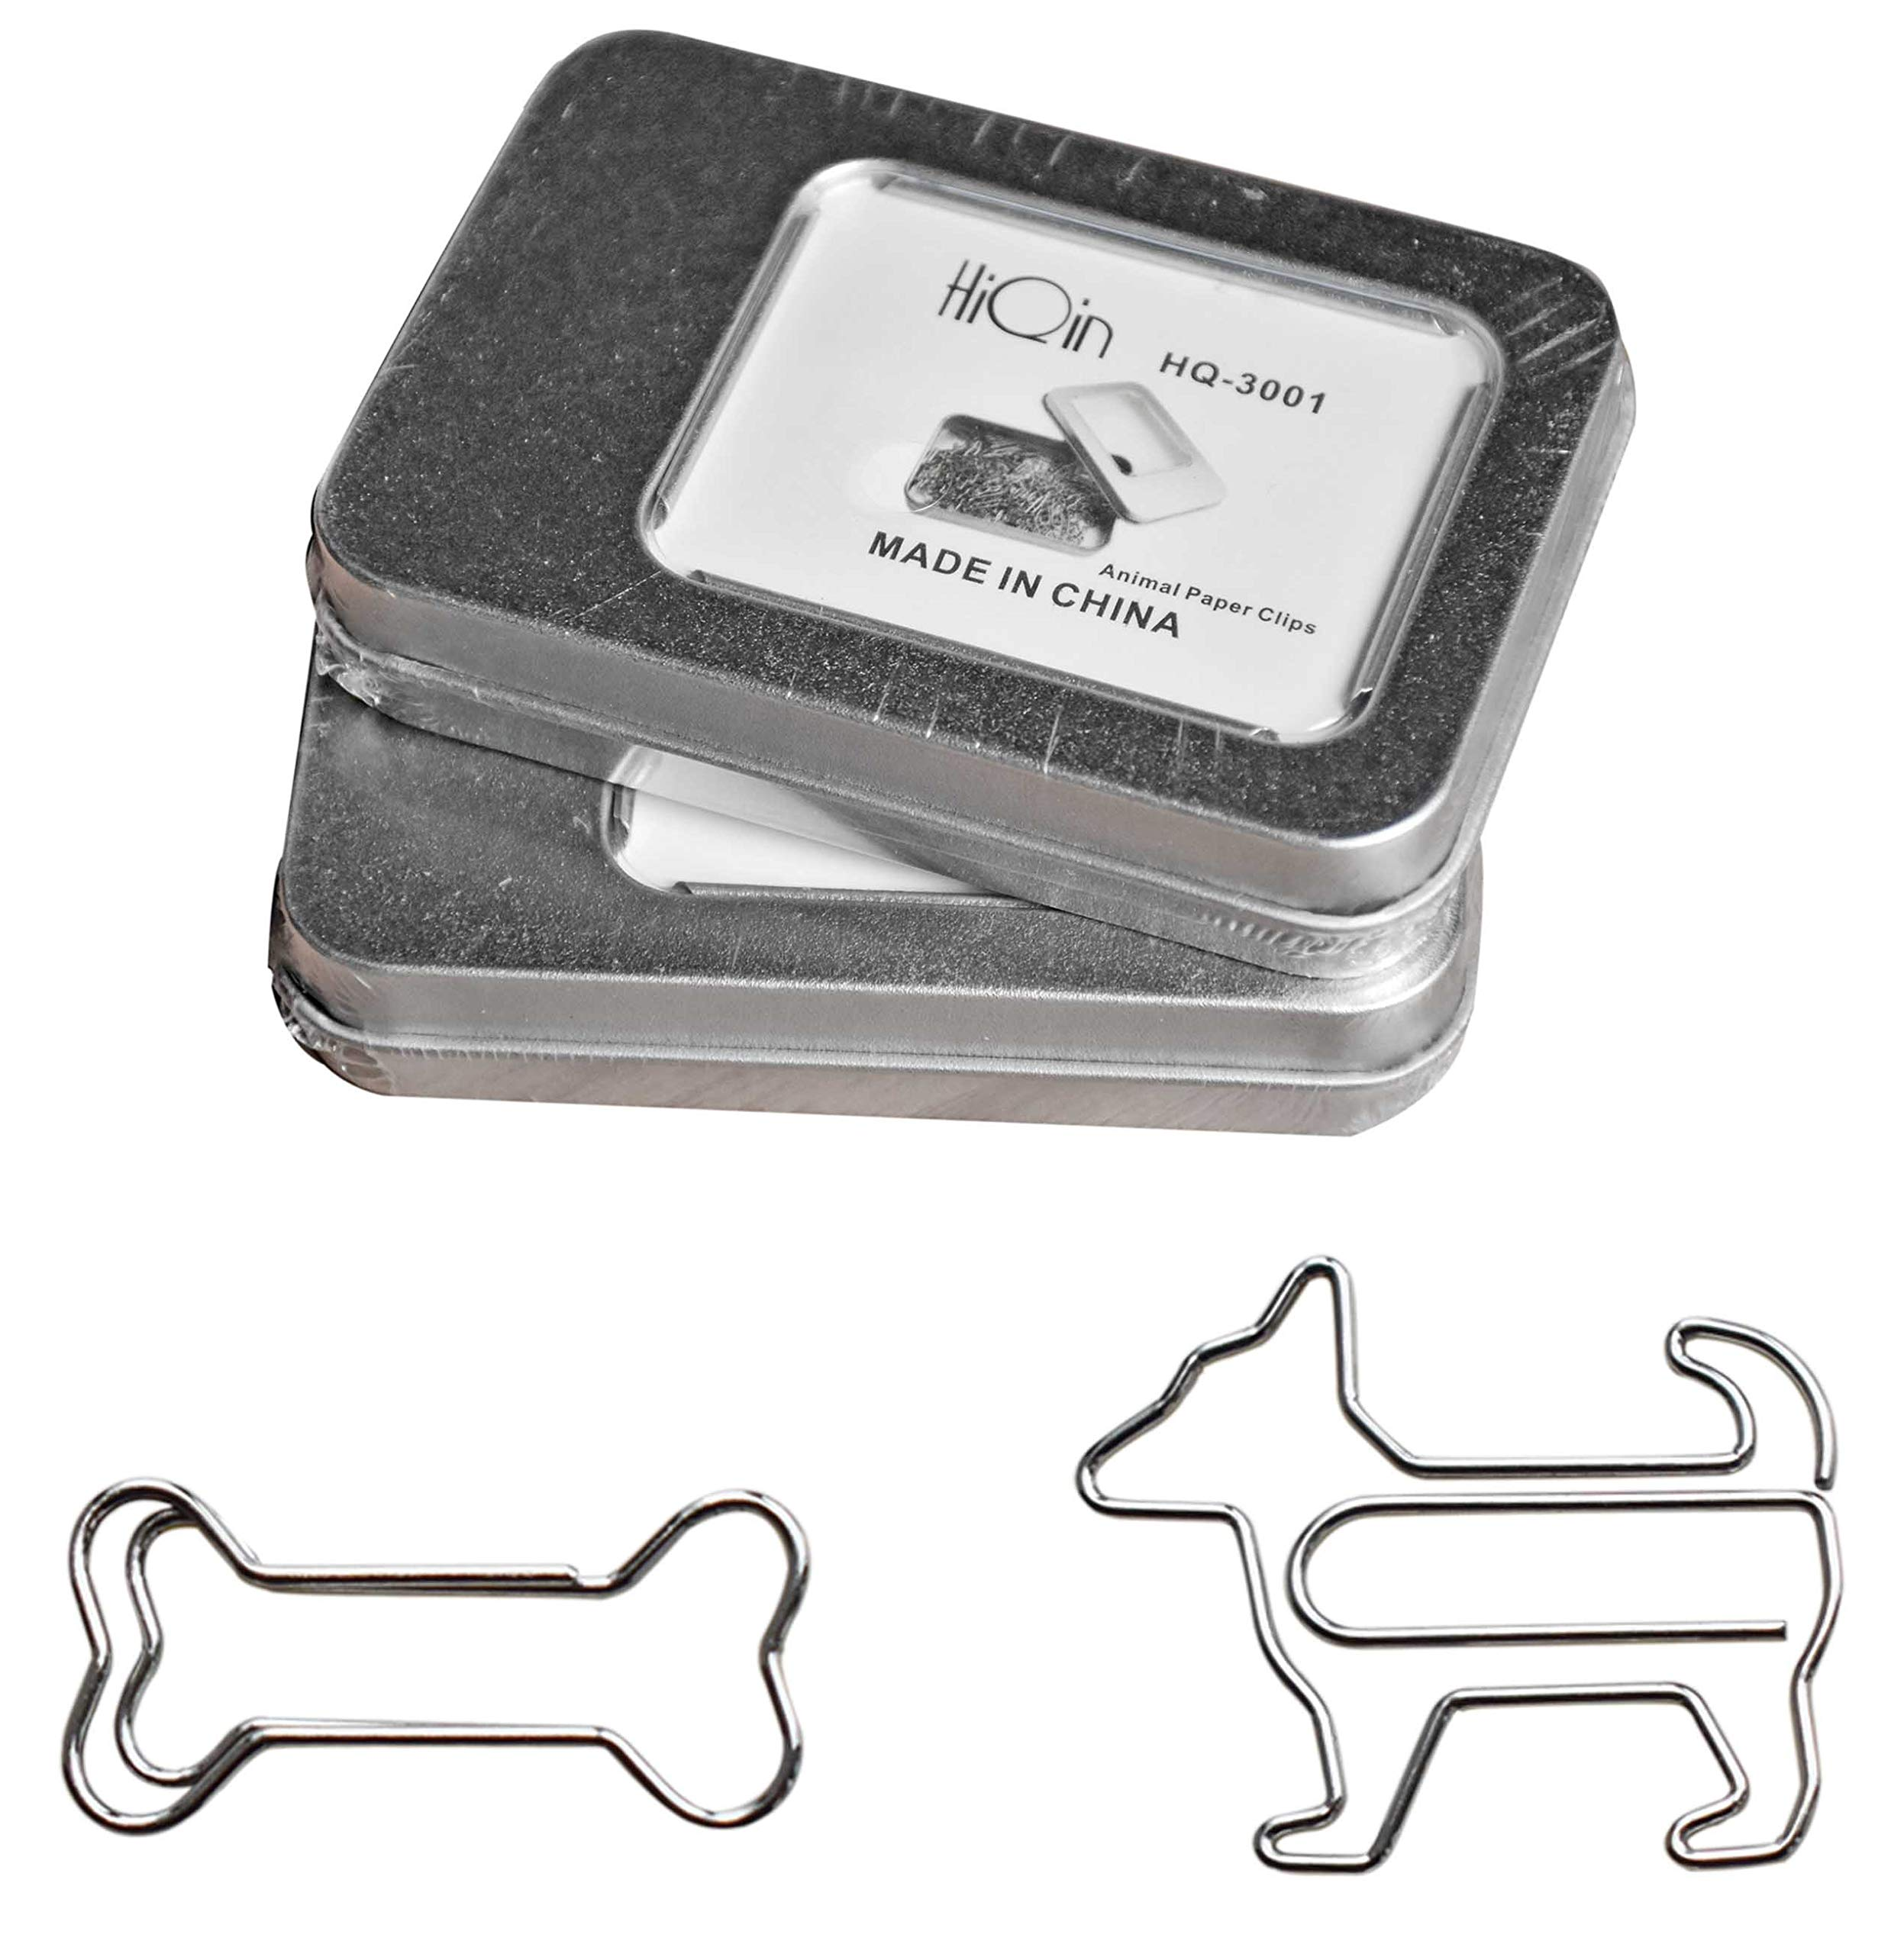 HiQin Paper Clips Bookmarks Dog Loves Bone (Value 2 Boxes) - Cute Office Supplies for Daily Planner or Party Cards - Gifts Idea